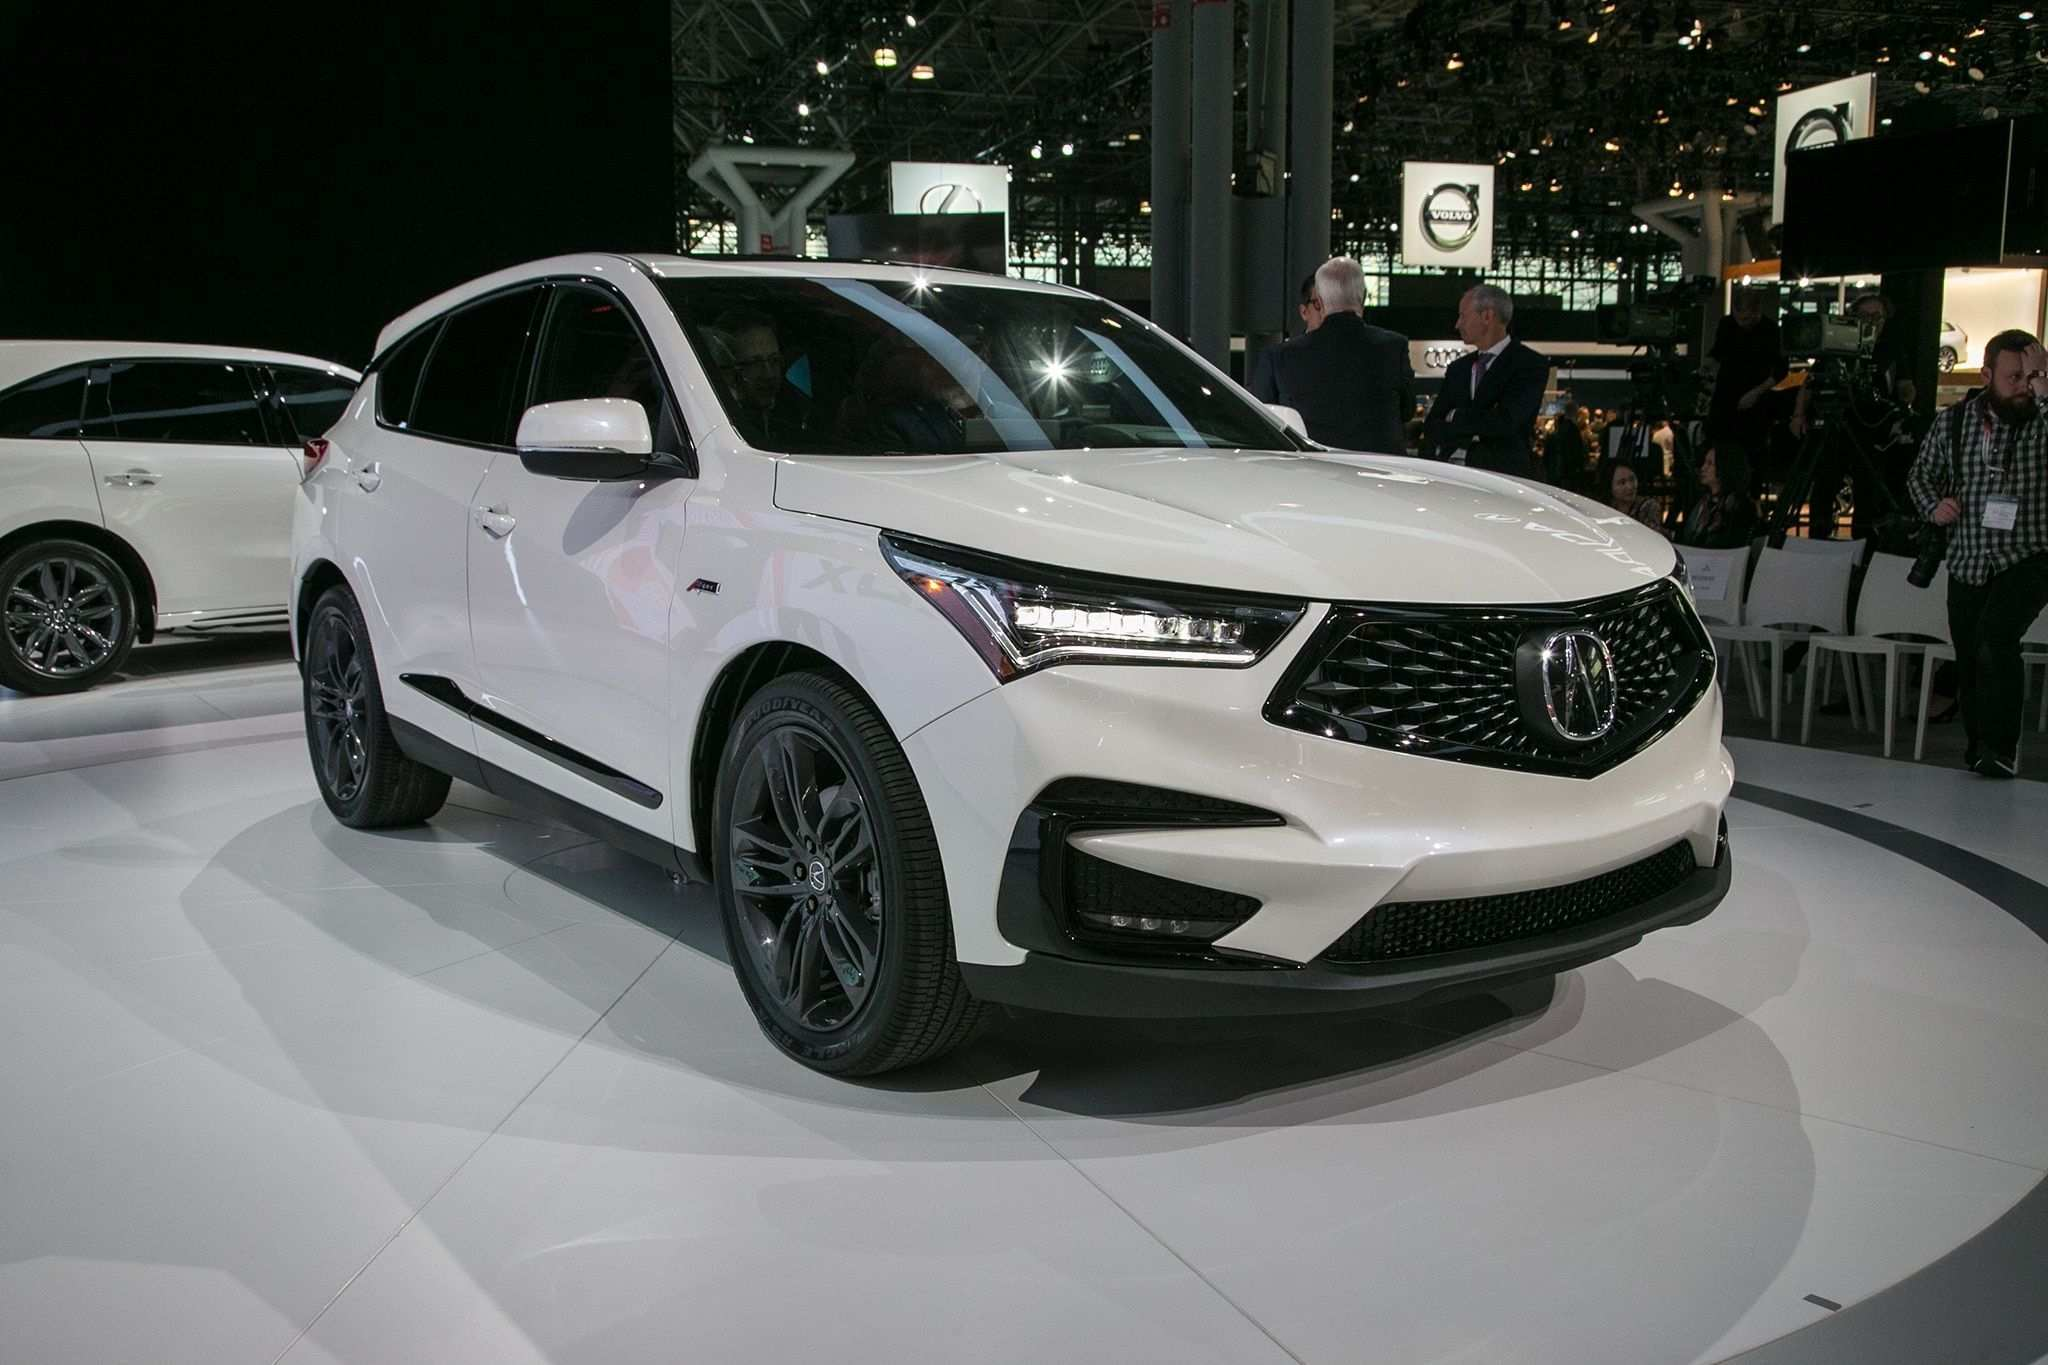 20 Concept of New Acura 2019 Zdx First Drive Price Performance And Review Price and Review with New Acura 2019 Zdx First Drive Price Performance And Review